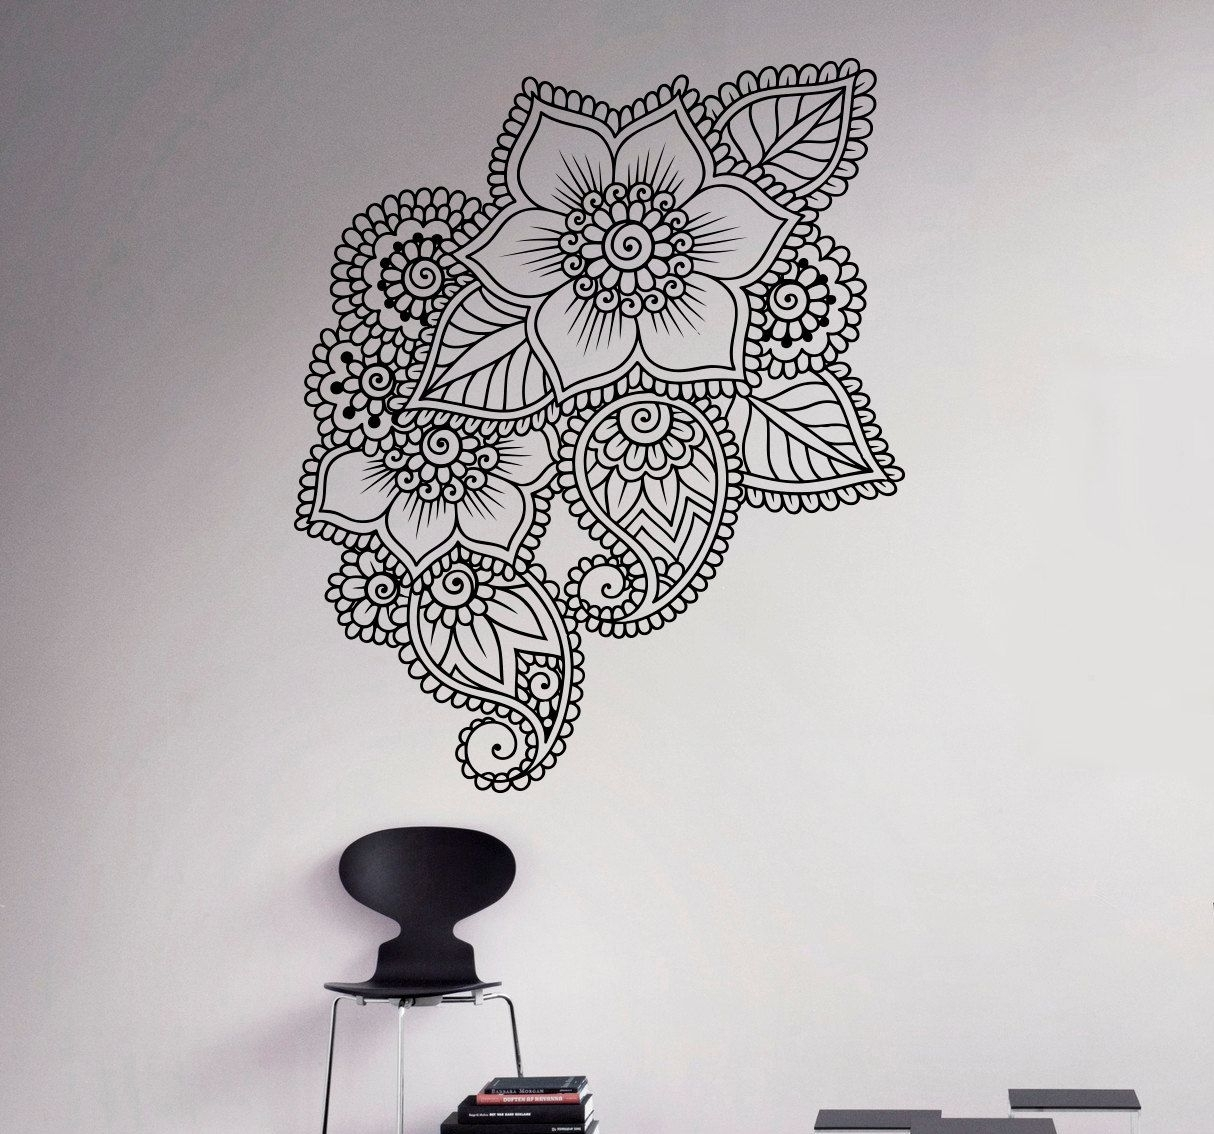 Abstract Flowers Mehndi Wall Vinyl Decal Henna Indian Ornament Wall Throughout Most Recently Released Henna Wall Art (View 3 of 20)